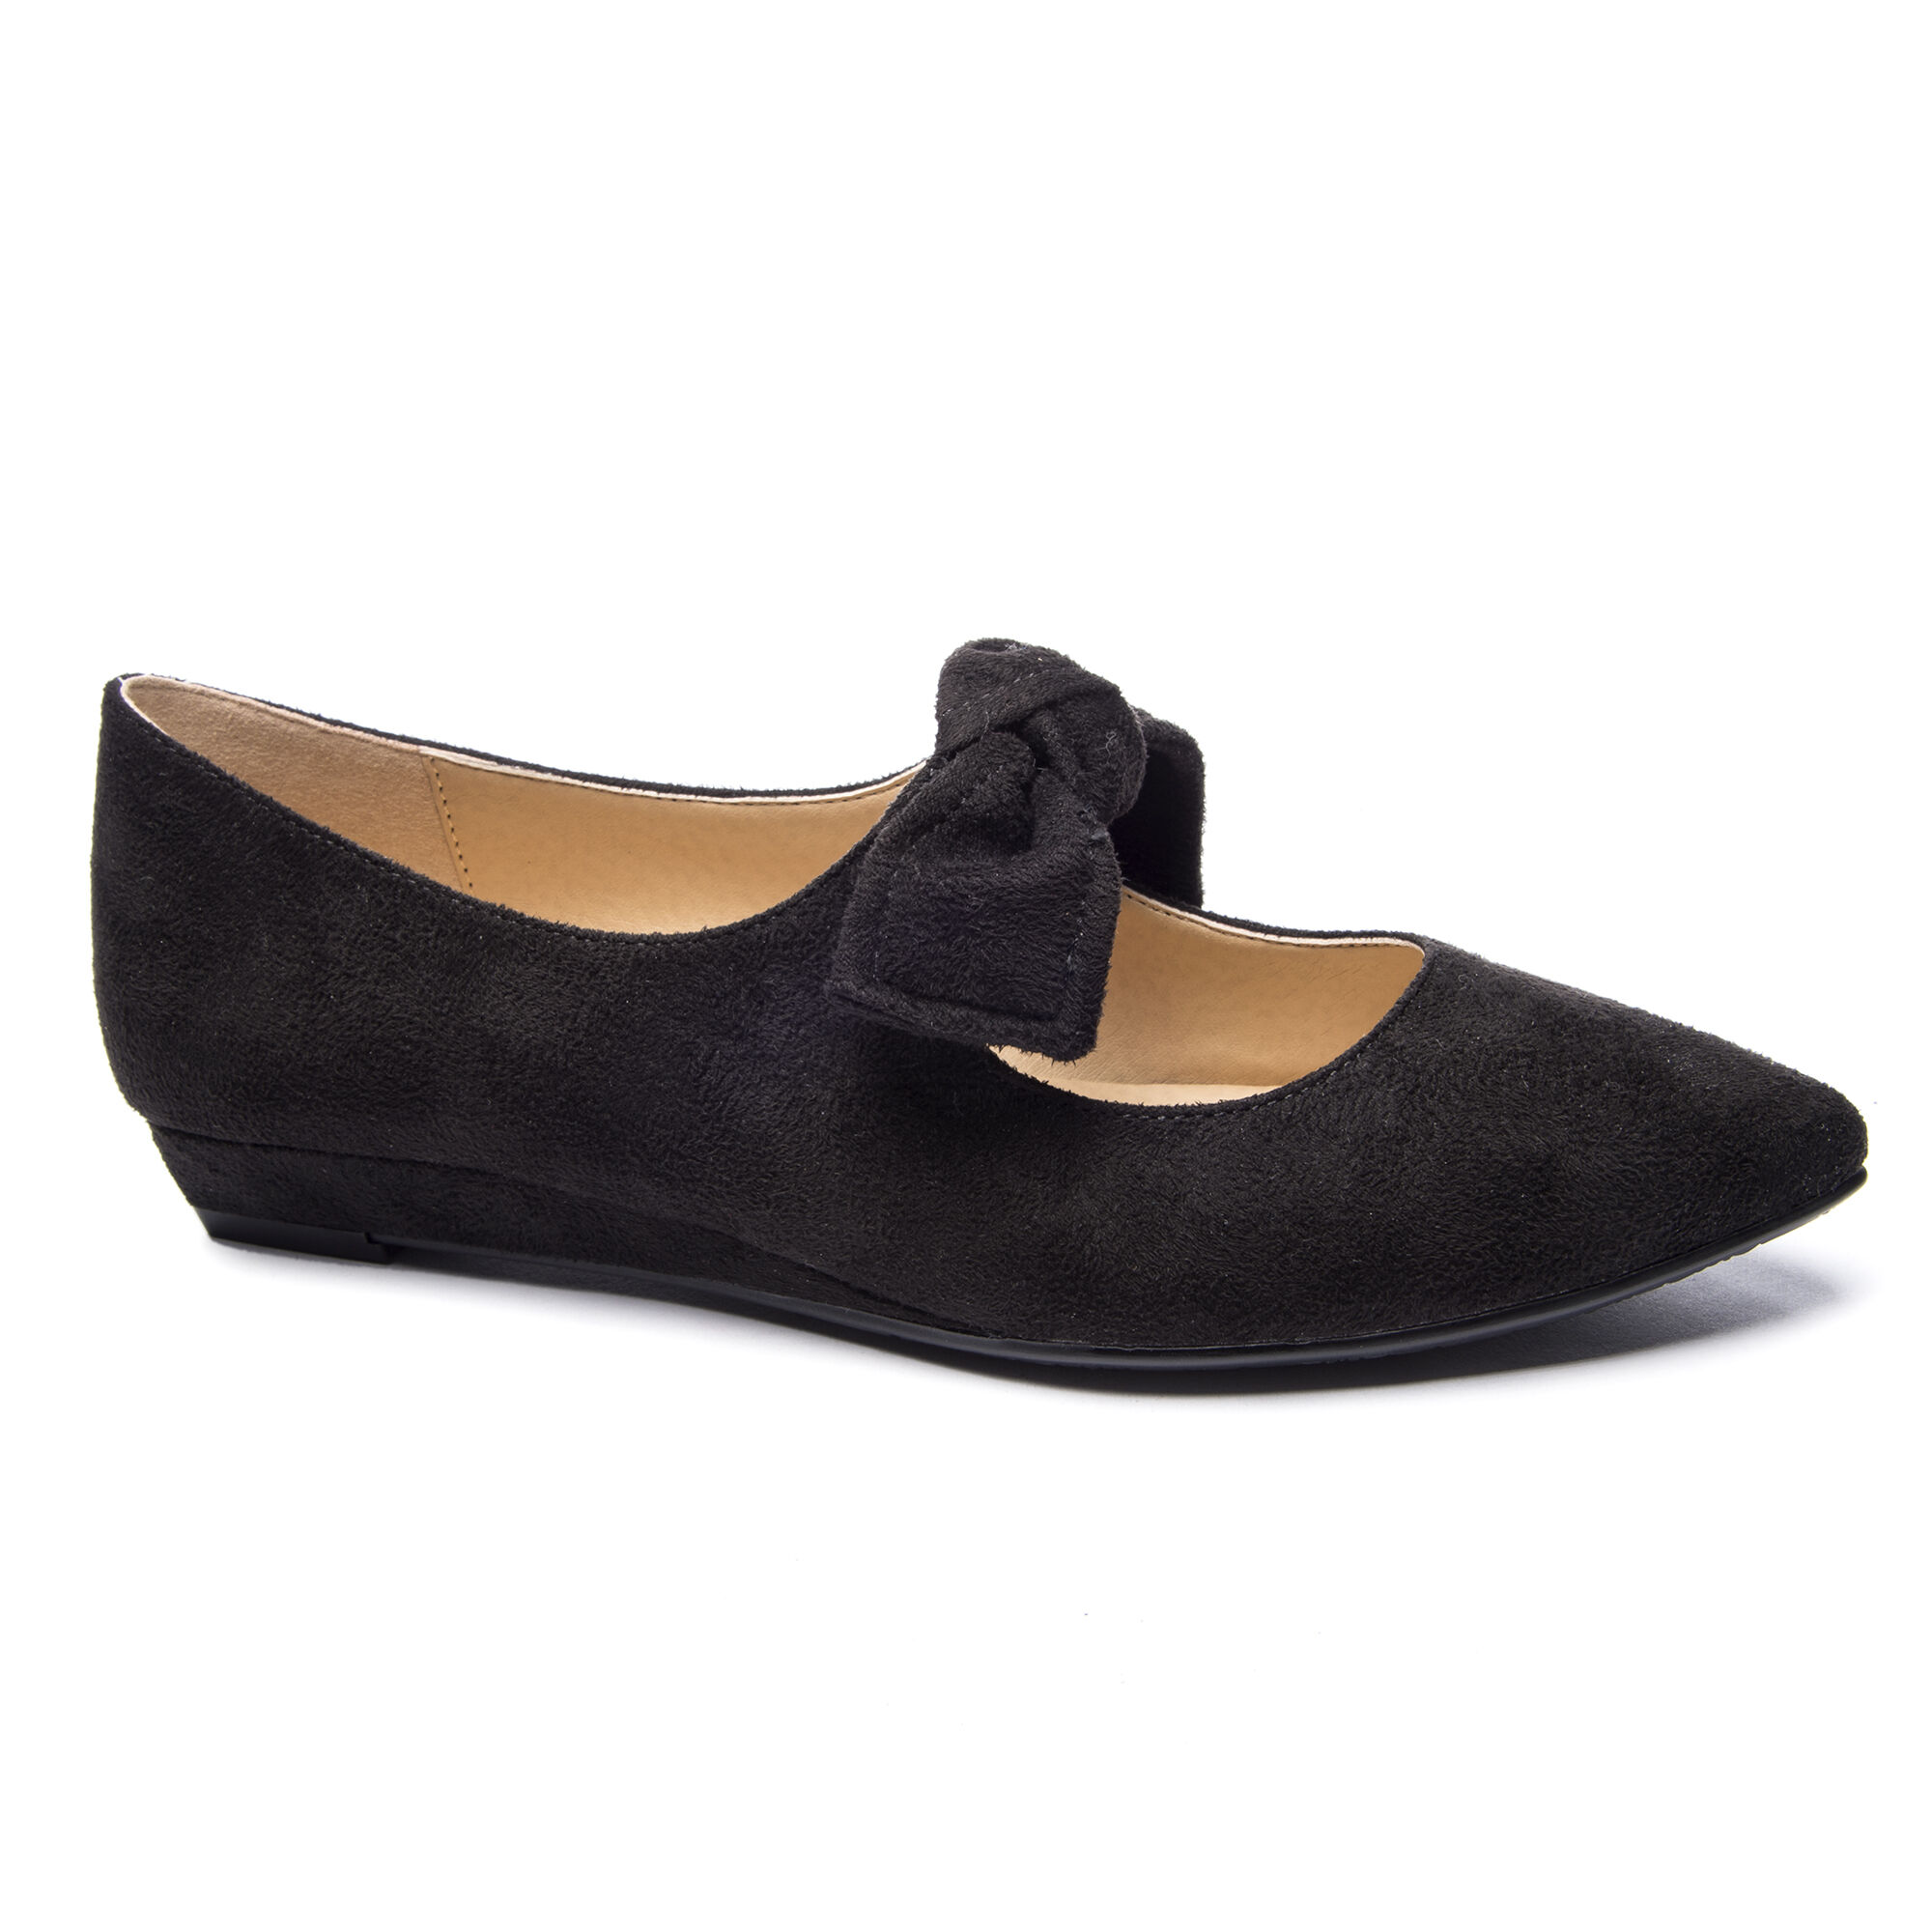 87528ca63cfee CL by Laundry Singer Pointy Toe Flat | Chinese Laundry